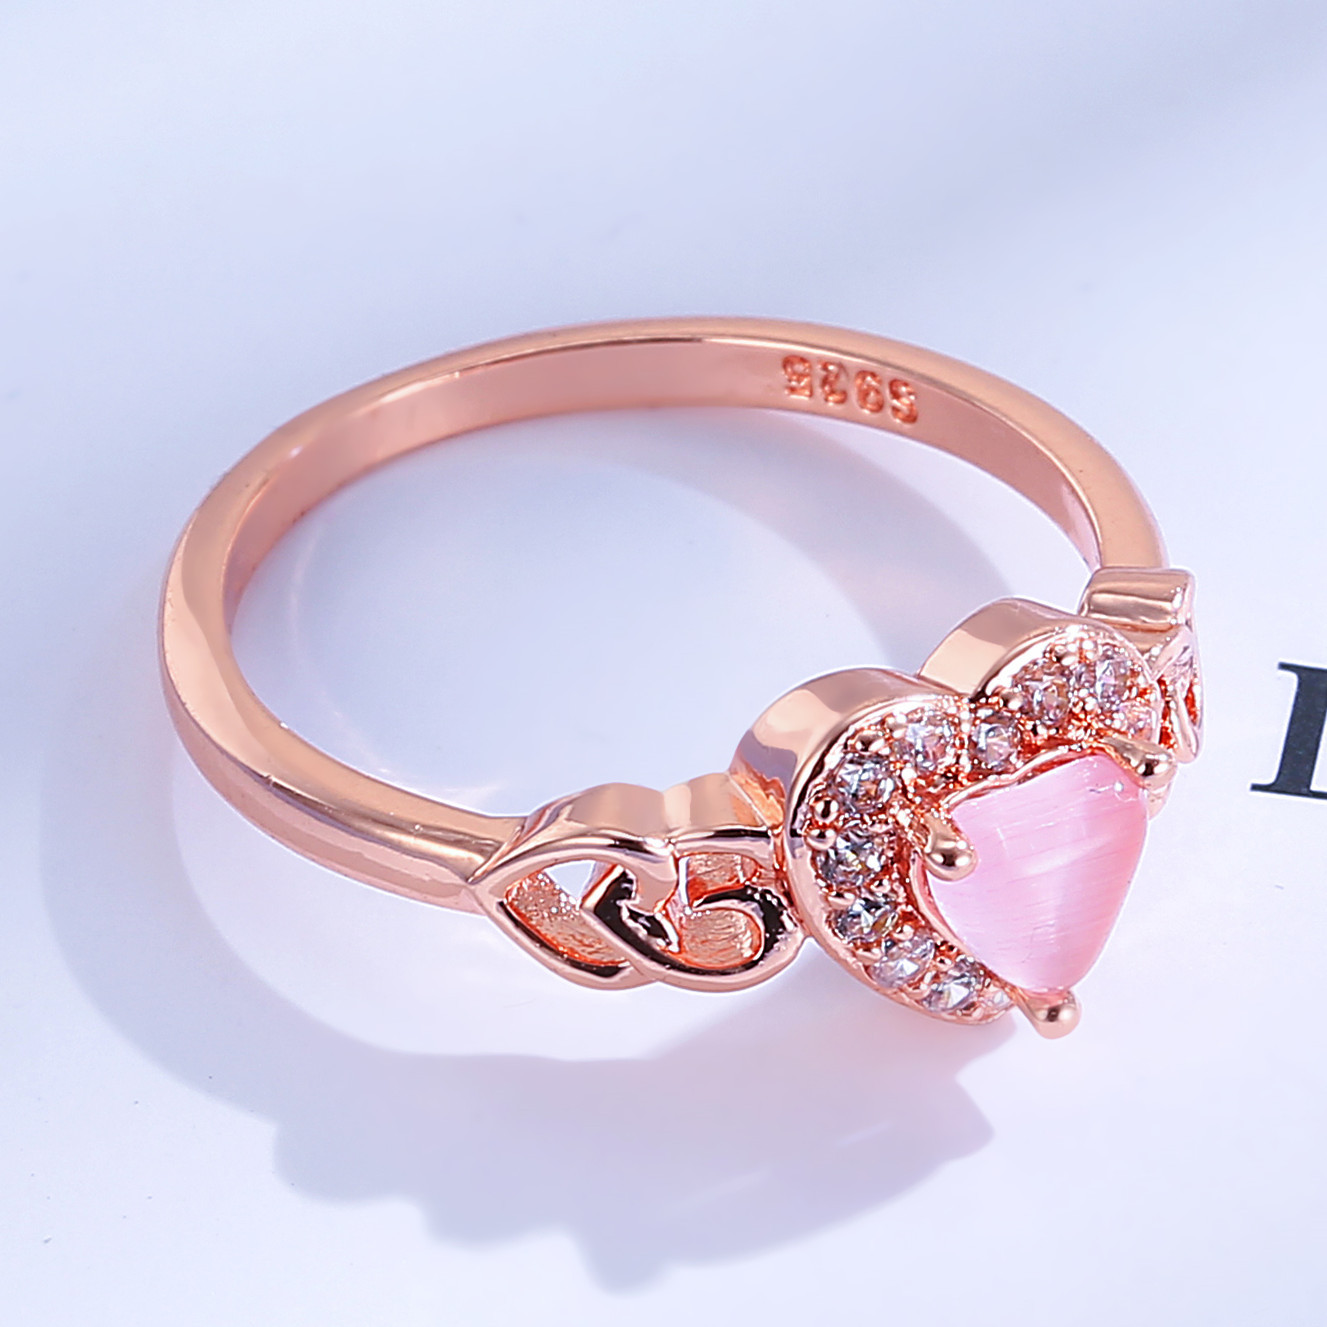 European New Fashion Pink Zircon Crystal Heart Shape Women Ring Rose Gold/Silver Colors Wedding Anniversary Engagement Ring anel